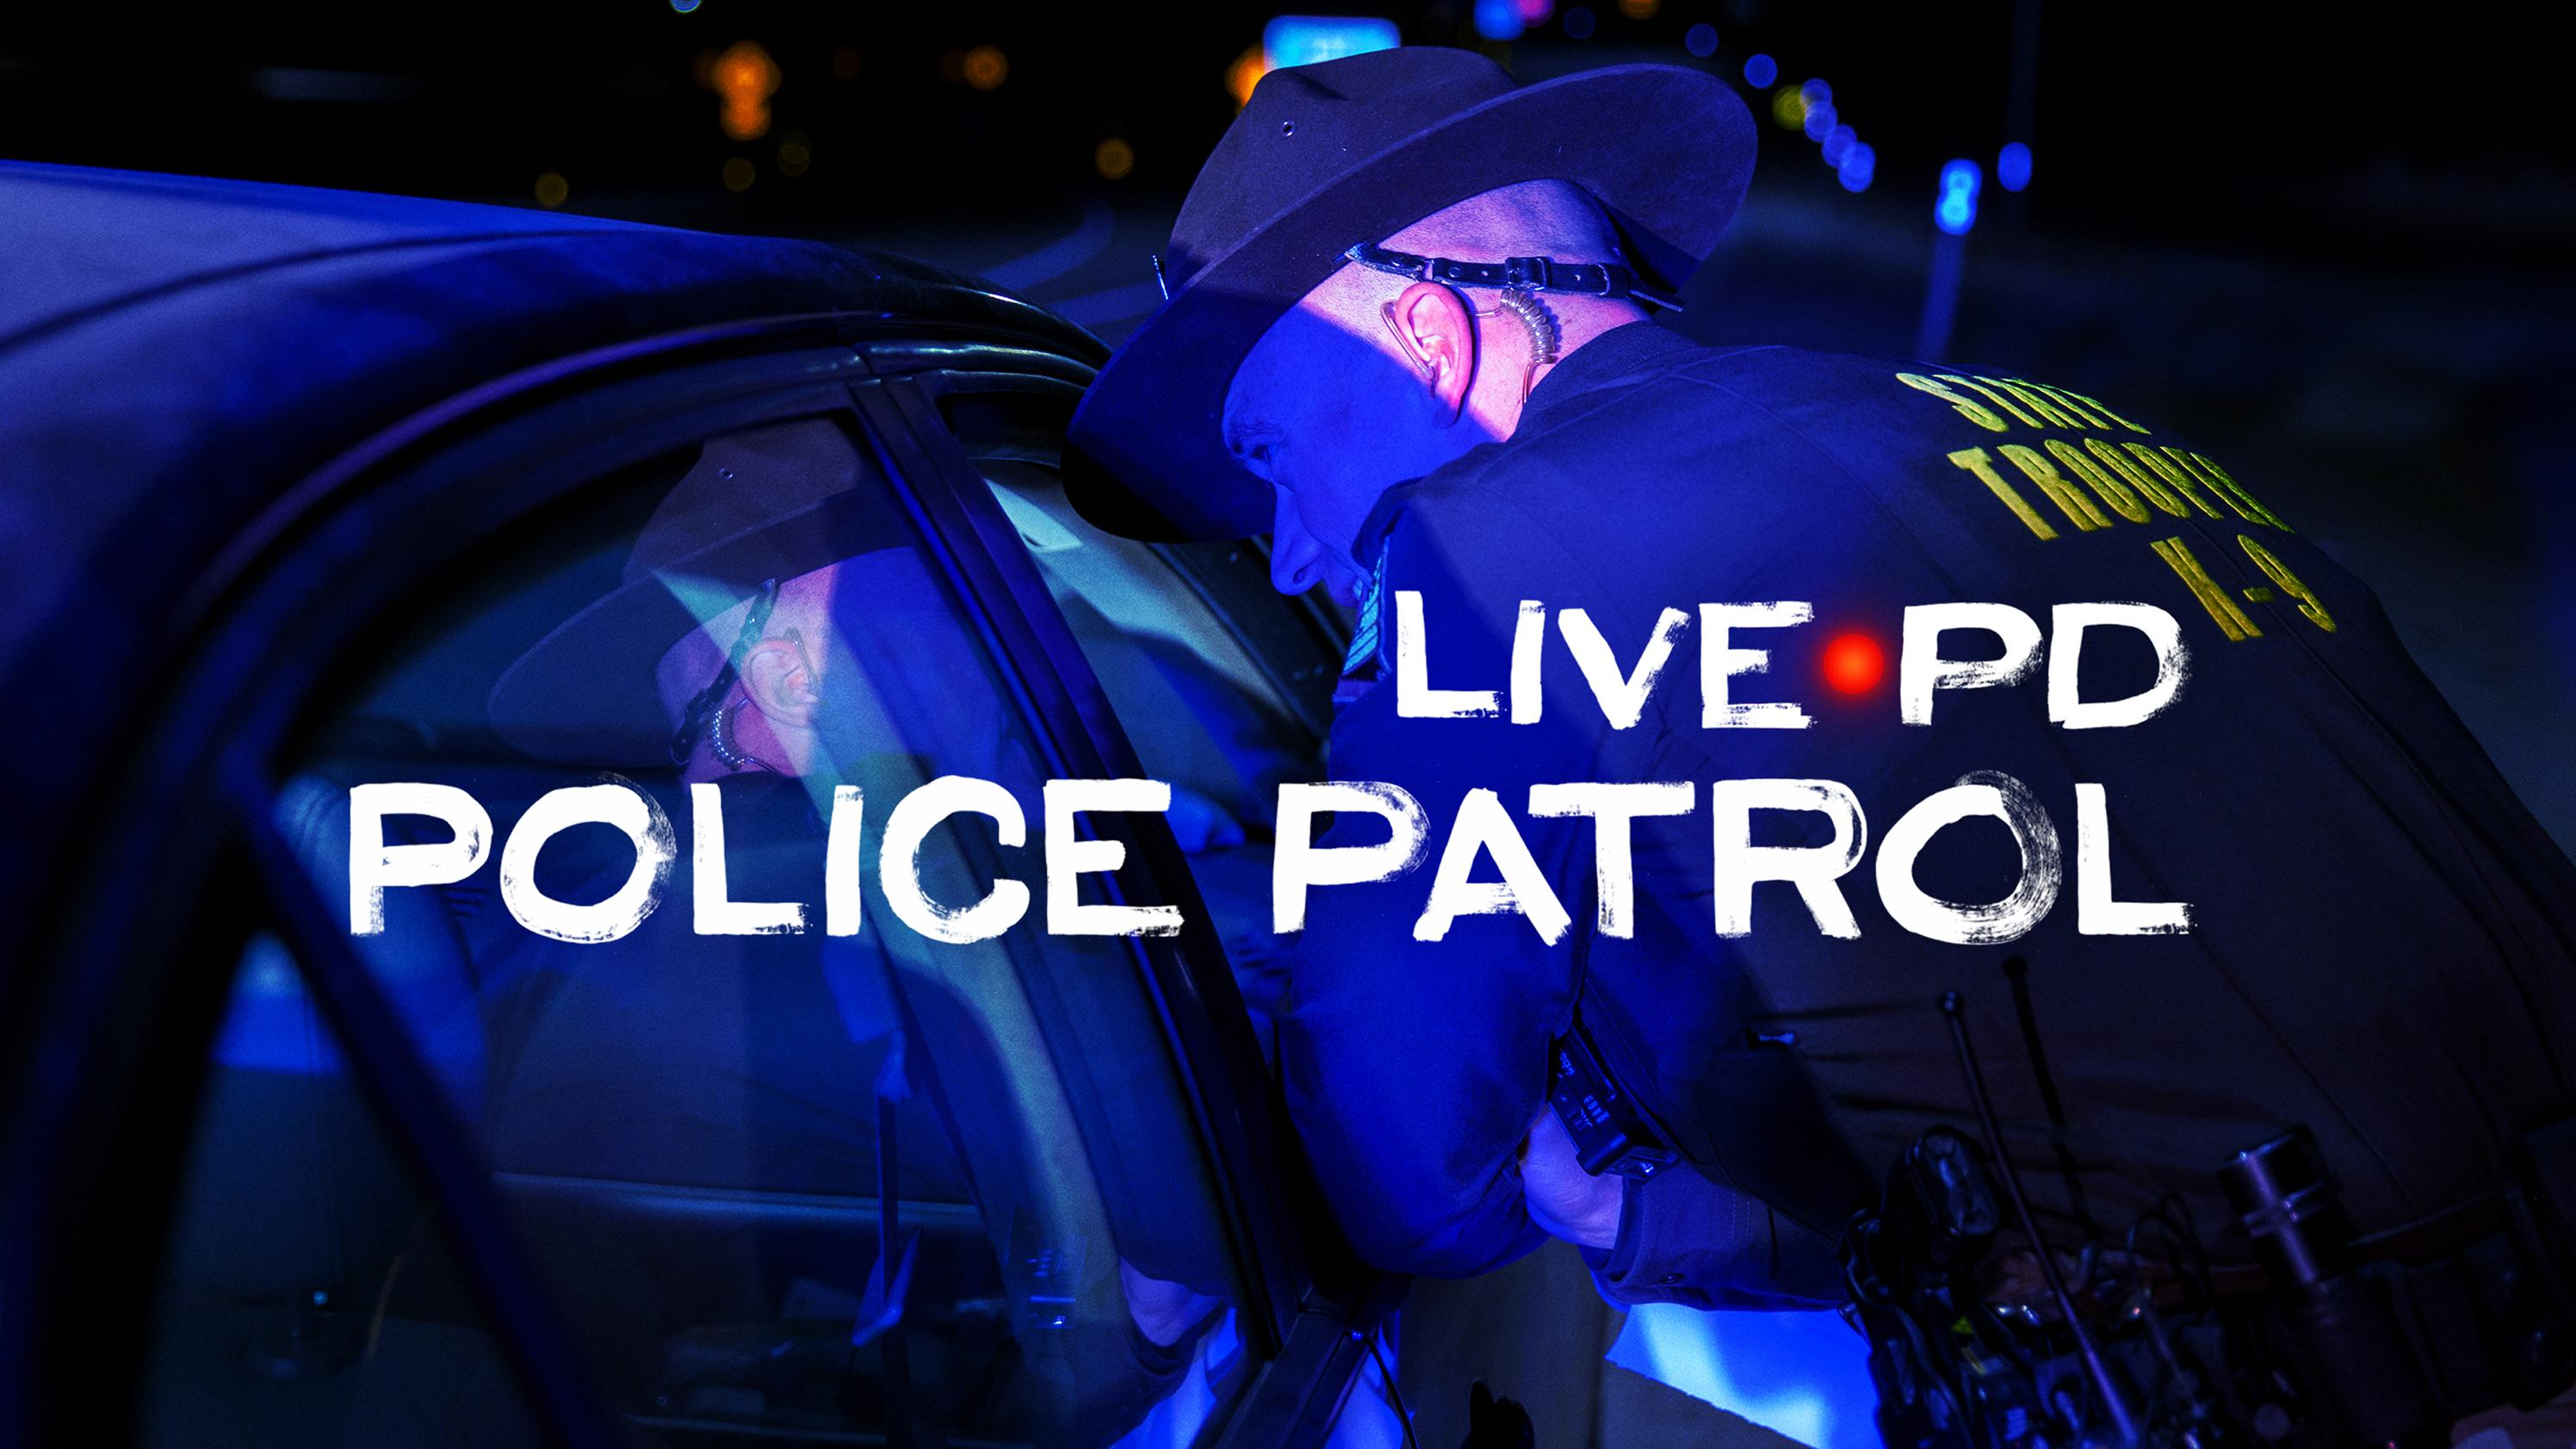 Stream And Watch Live PD: Police Patrol Online | Sling TV